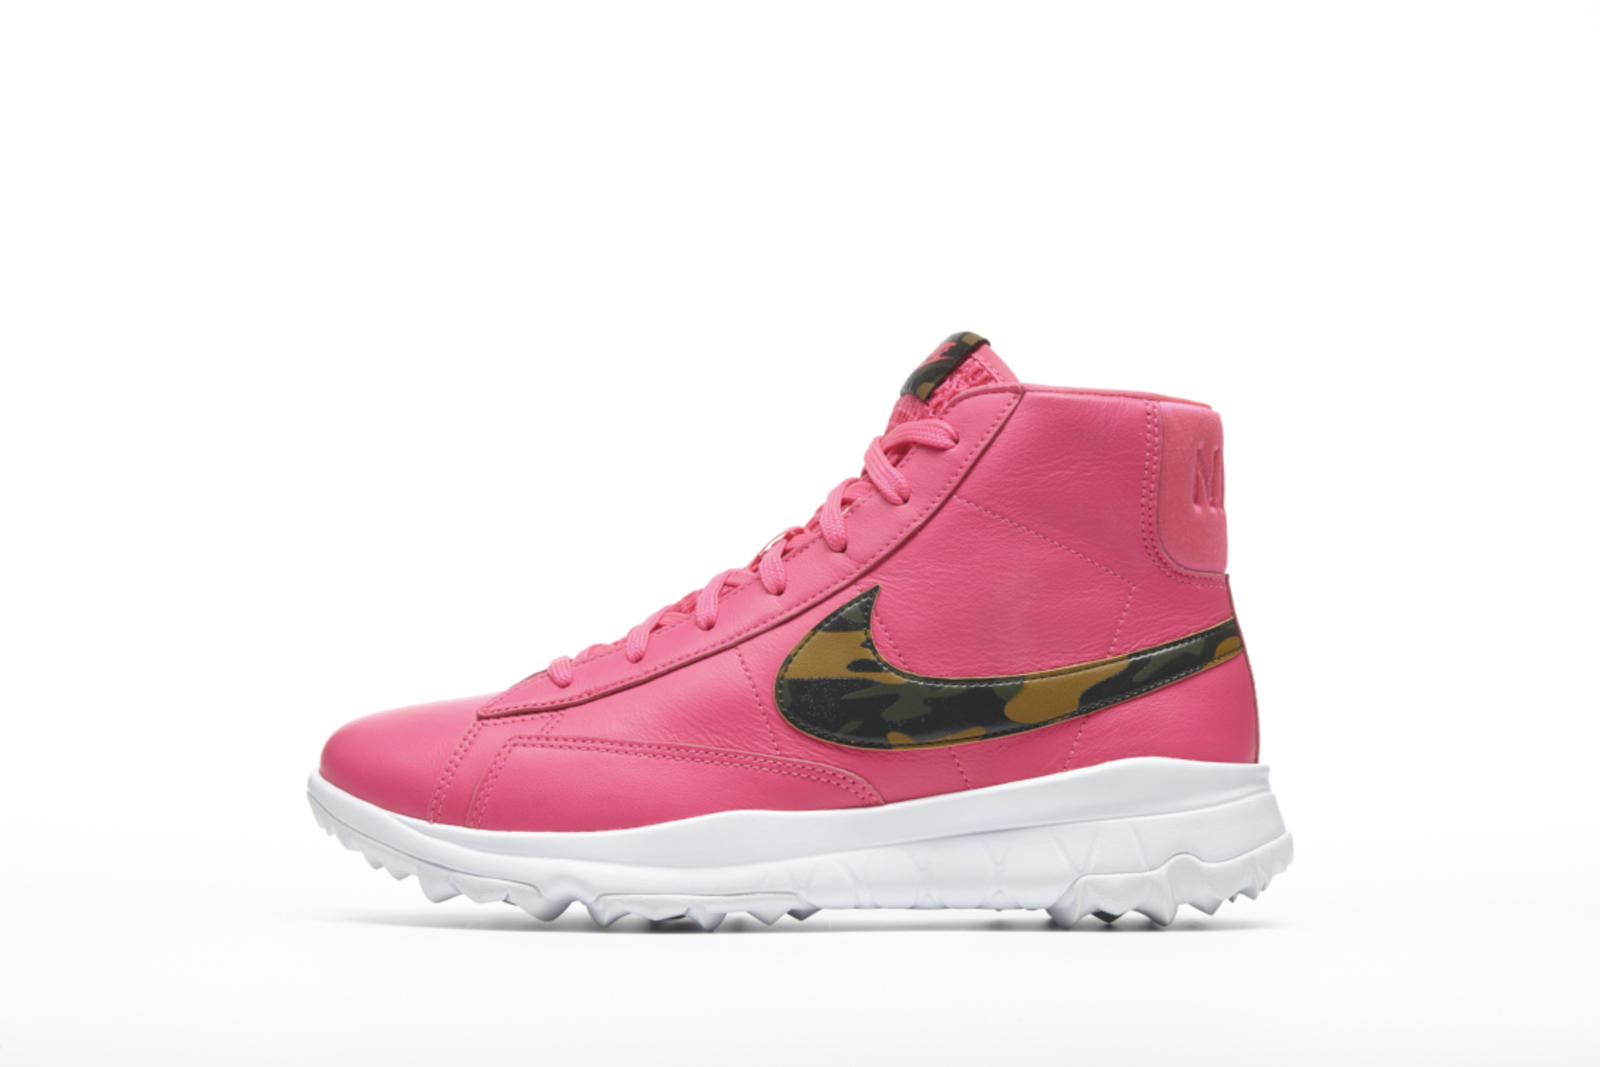 Nike S Women S Pink And Green Shoe